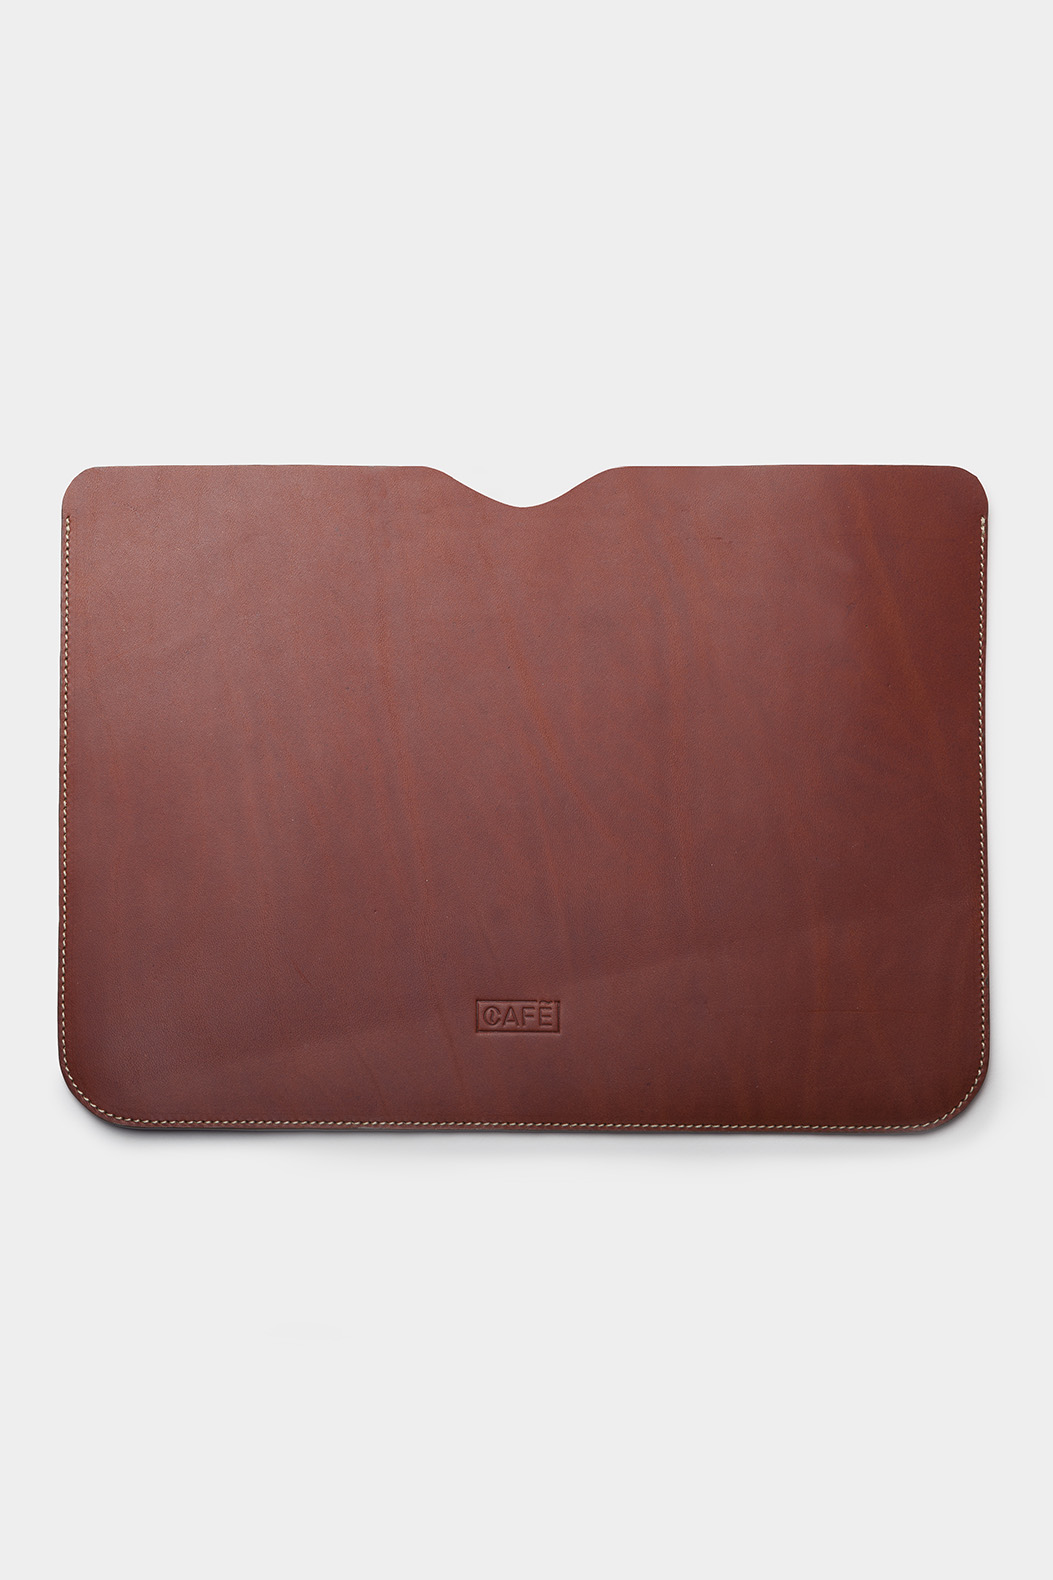 Leather laptop sleeve handcrafted by artisans in Spain.